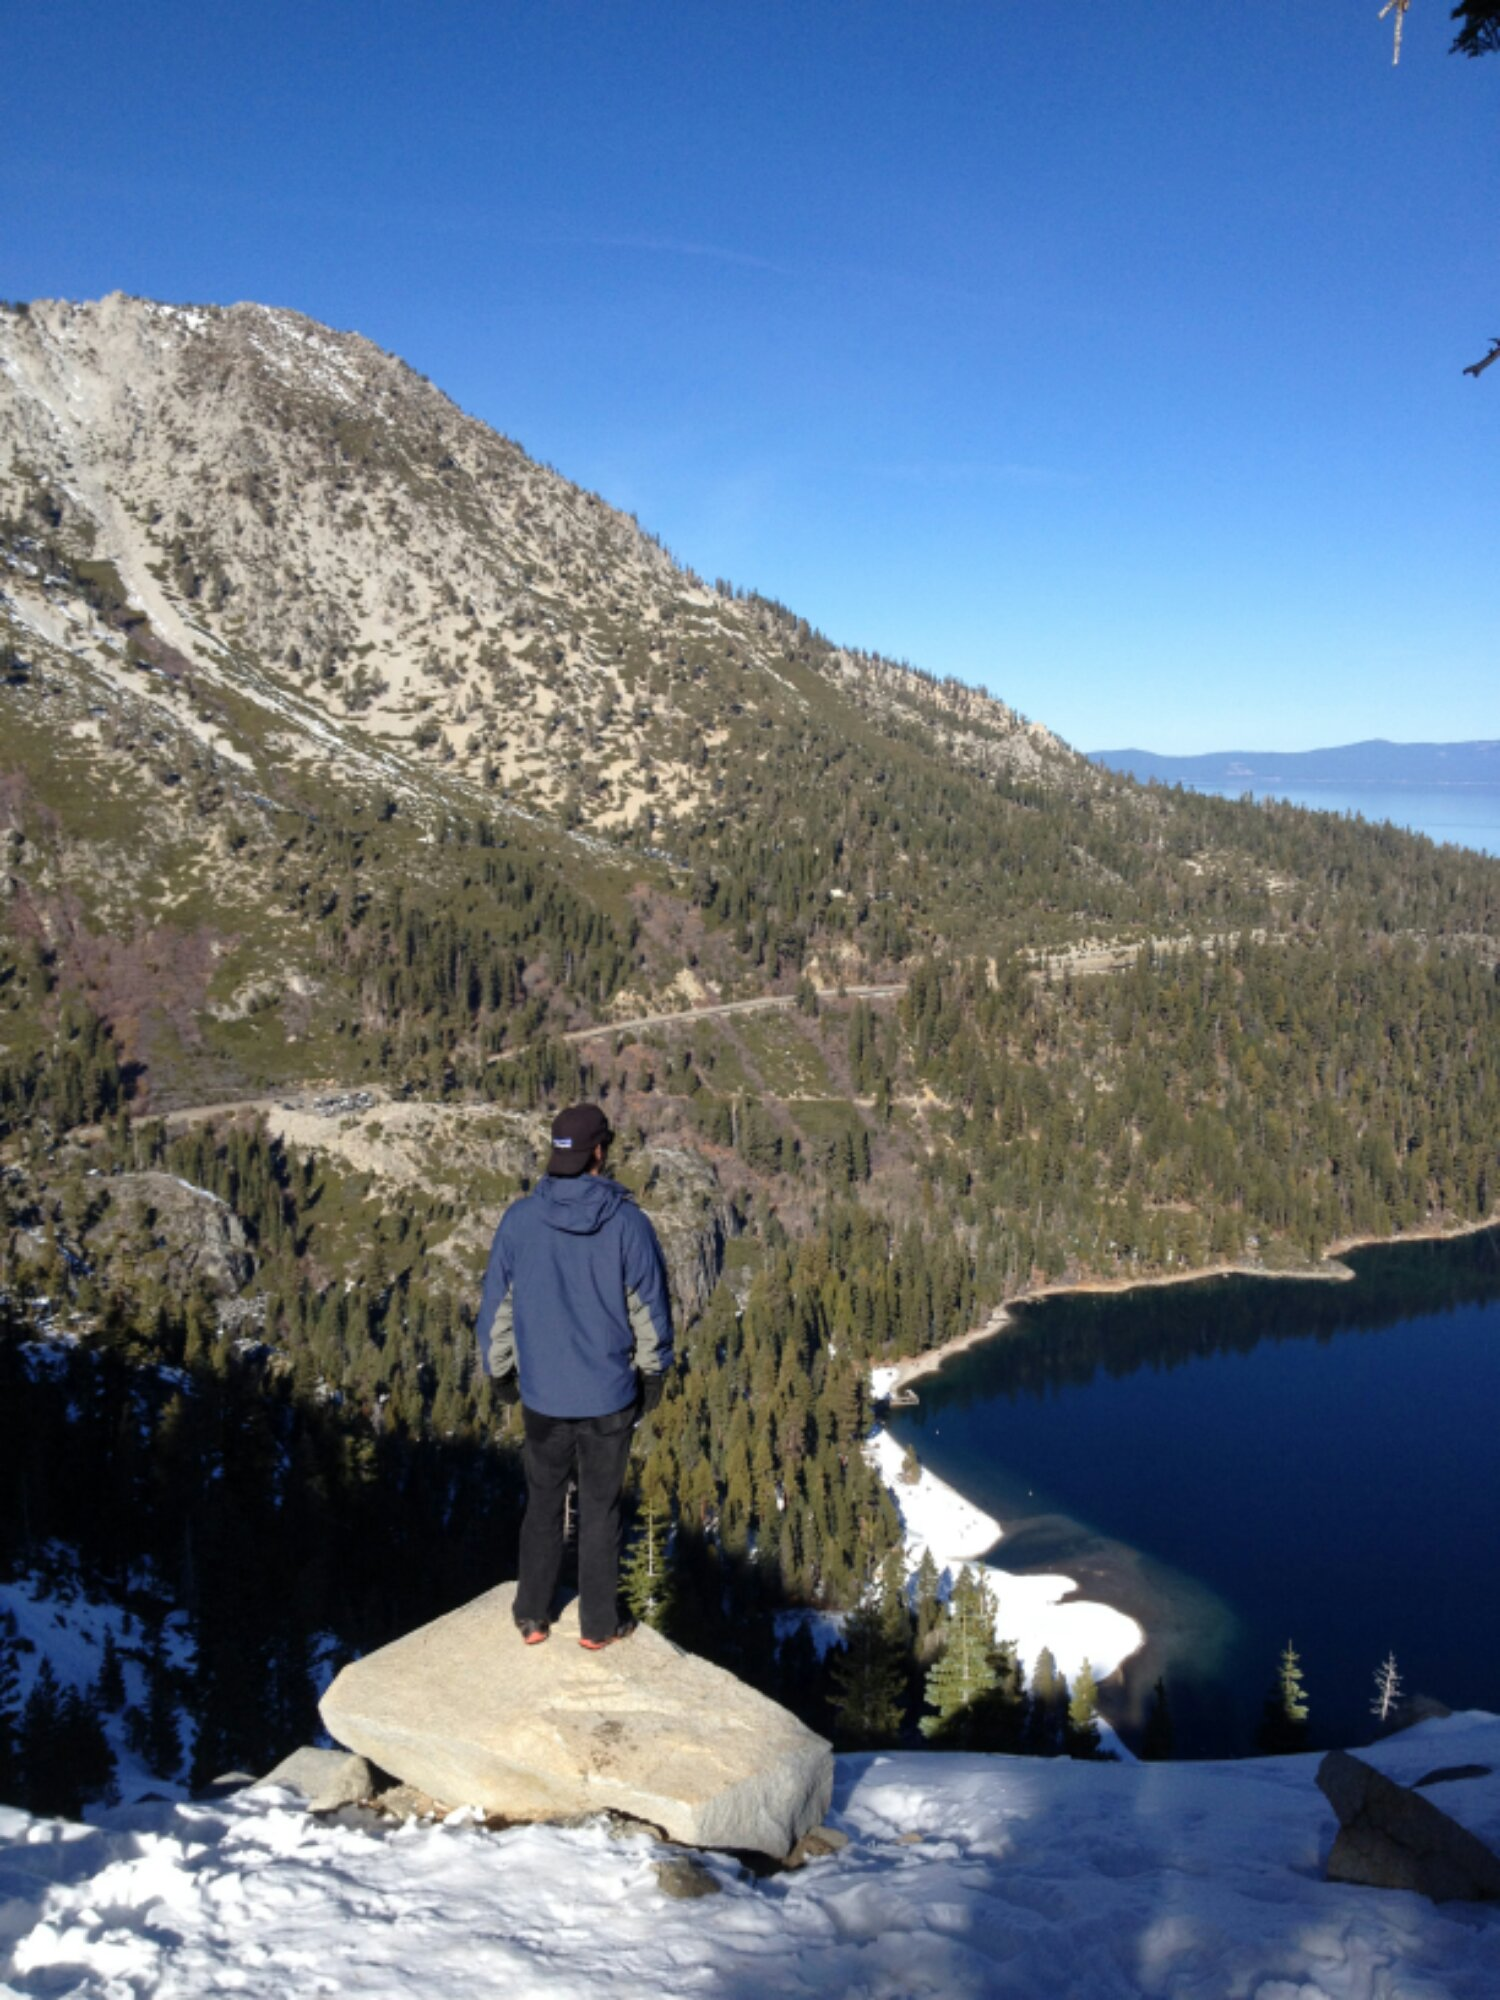 Hiking in beautiful Tahoe!